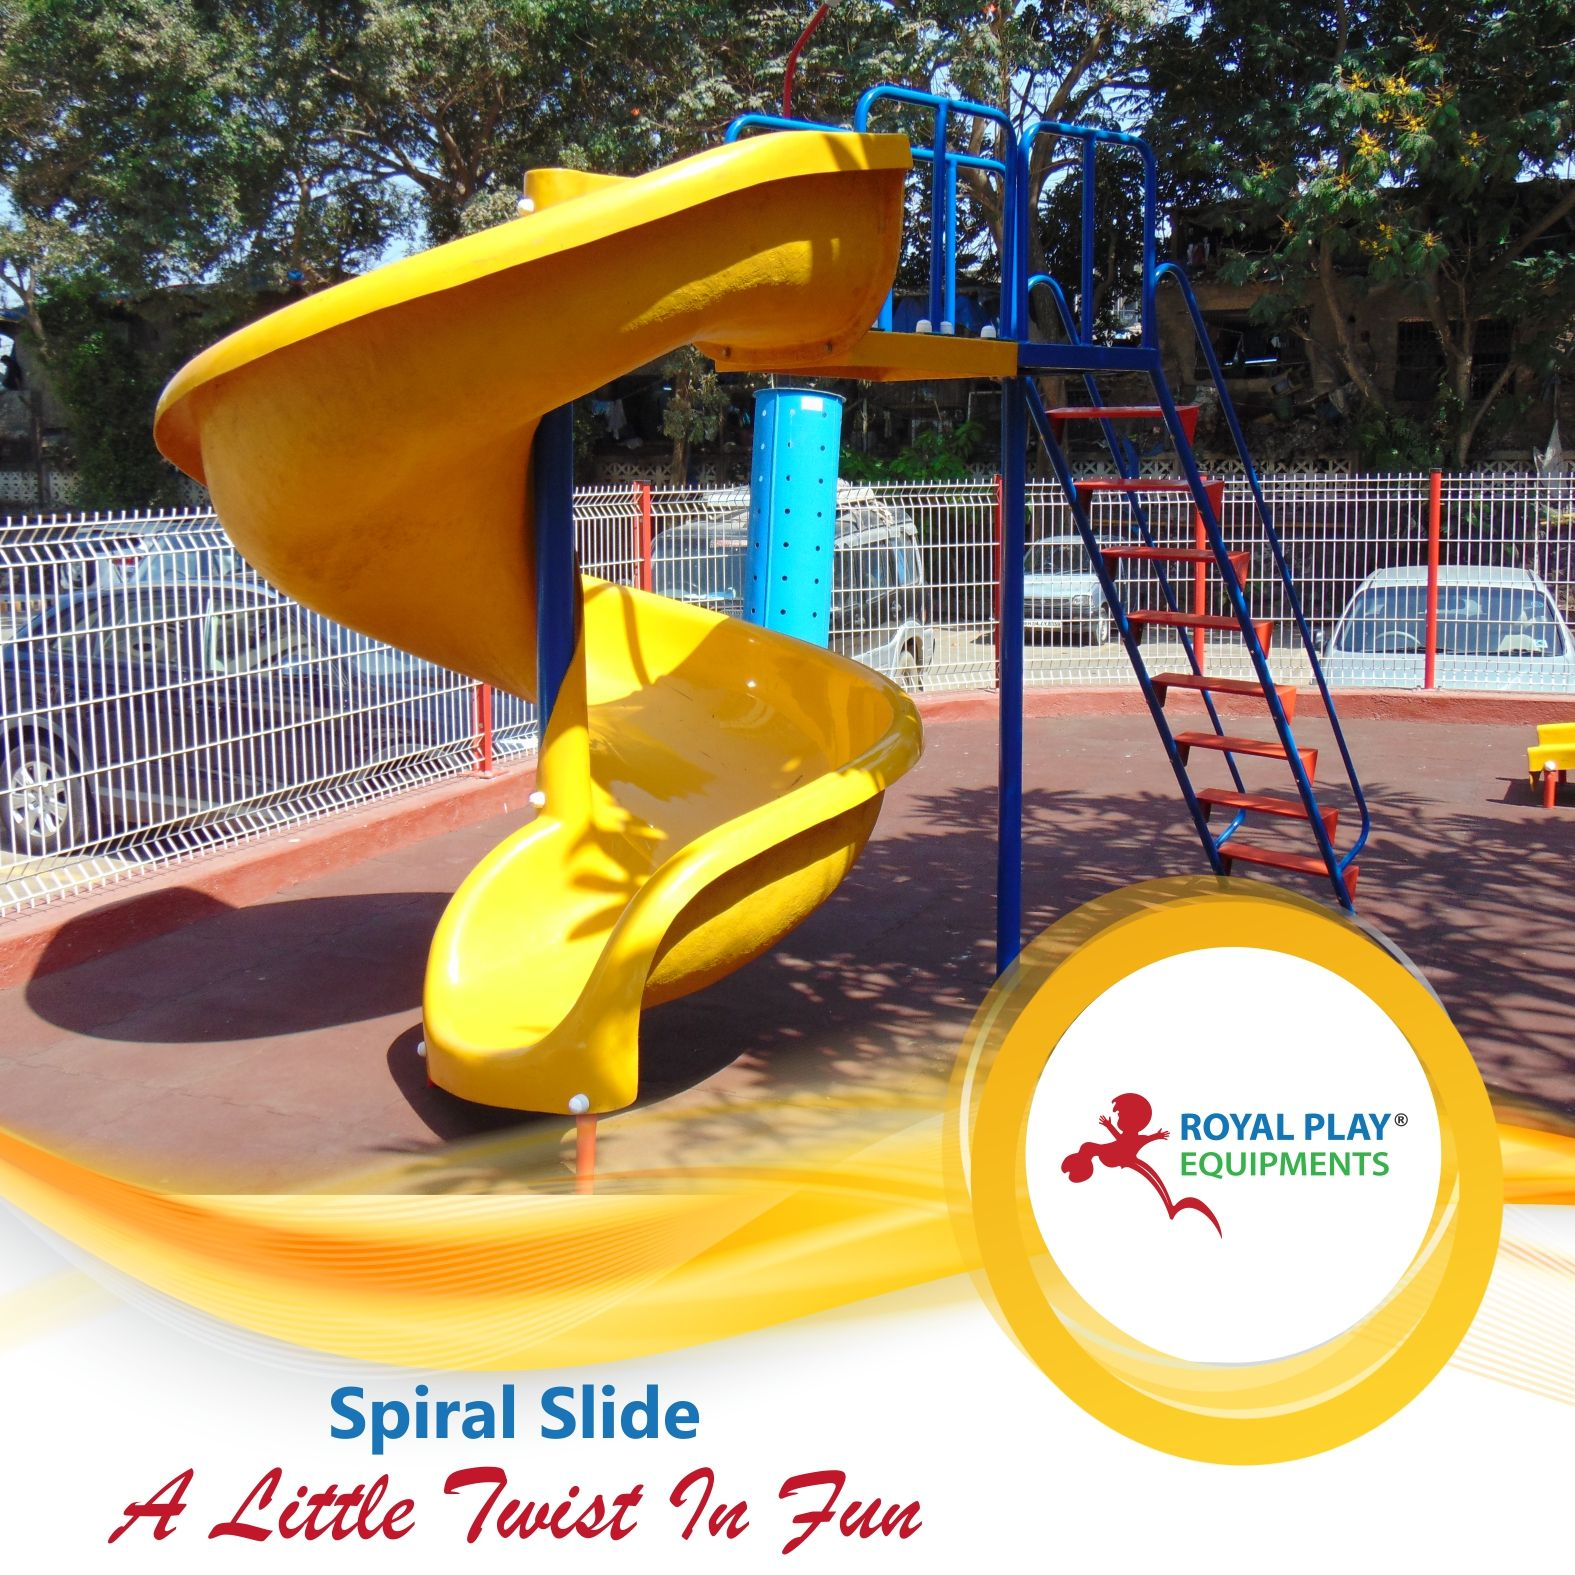 Royal play presents exciting spiral slides that